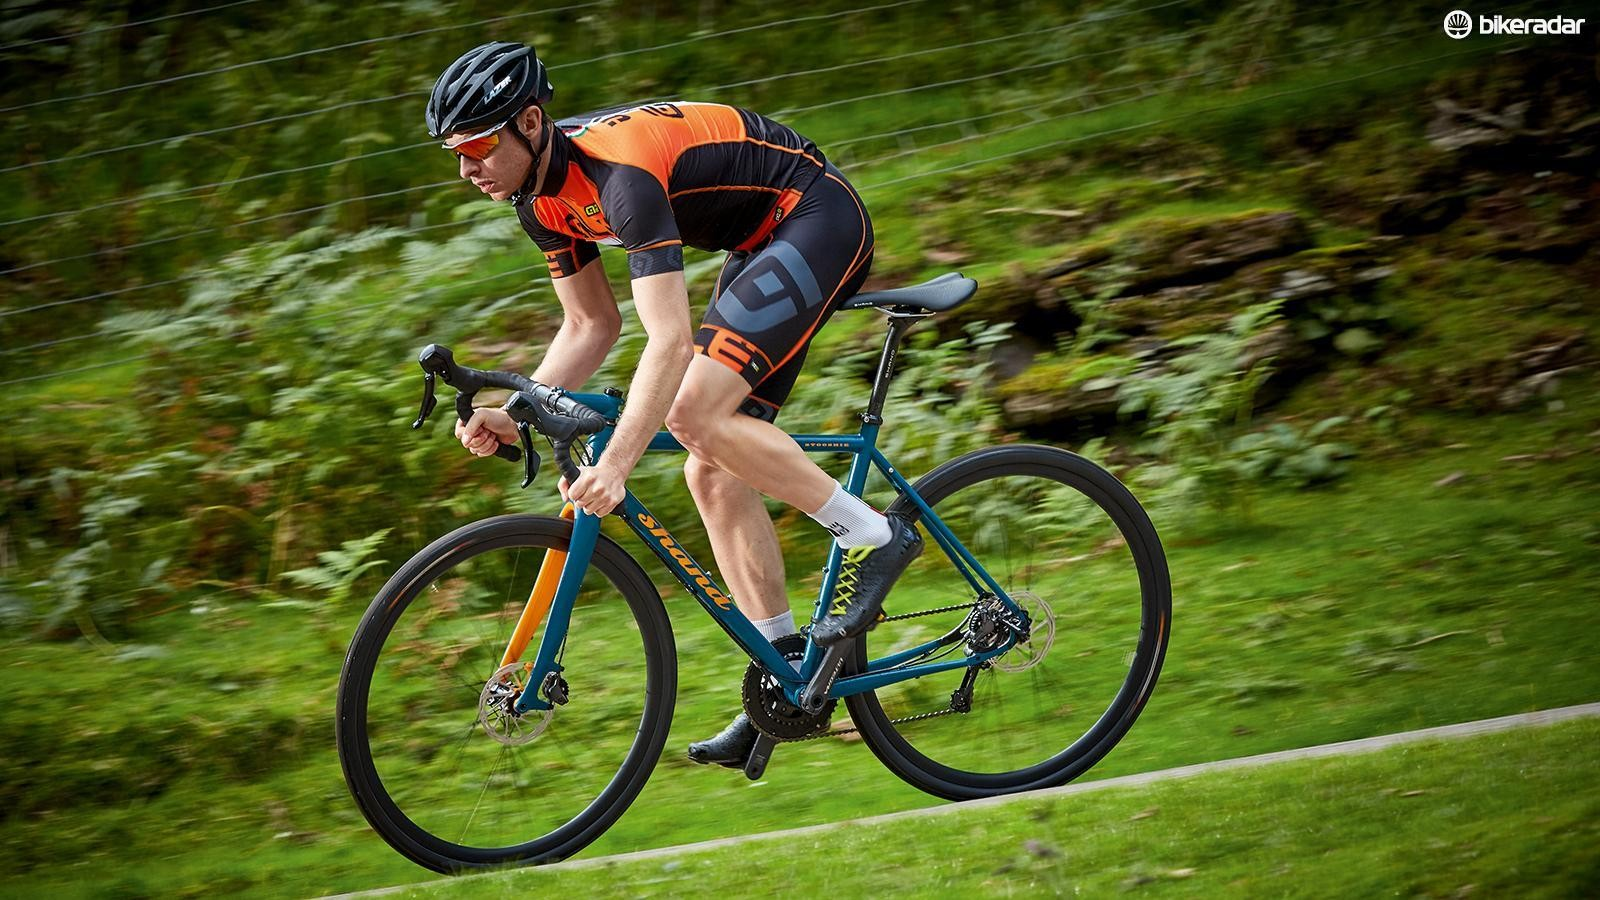 The Stooshie's relaxed ride makes for versatile, low stress, varied terrain conquering